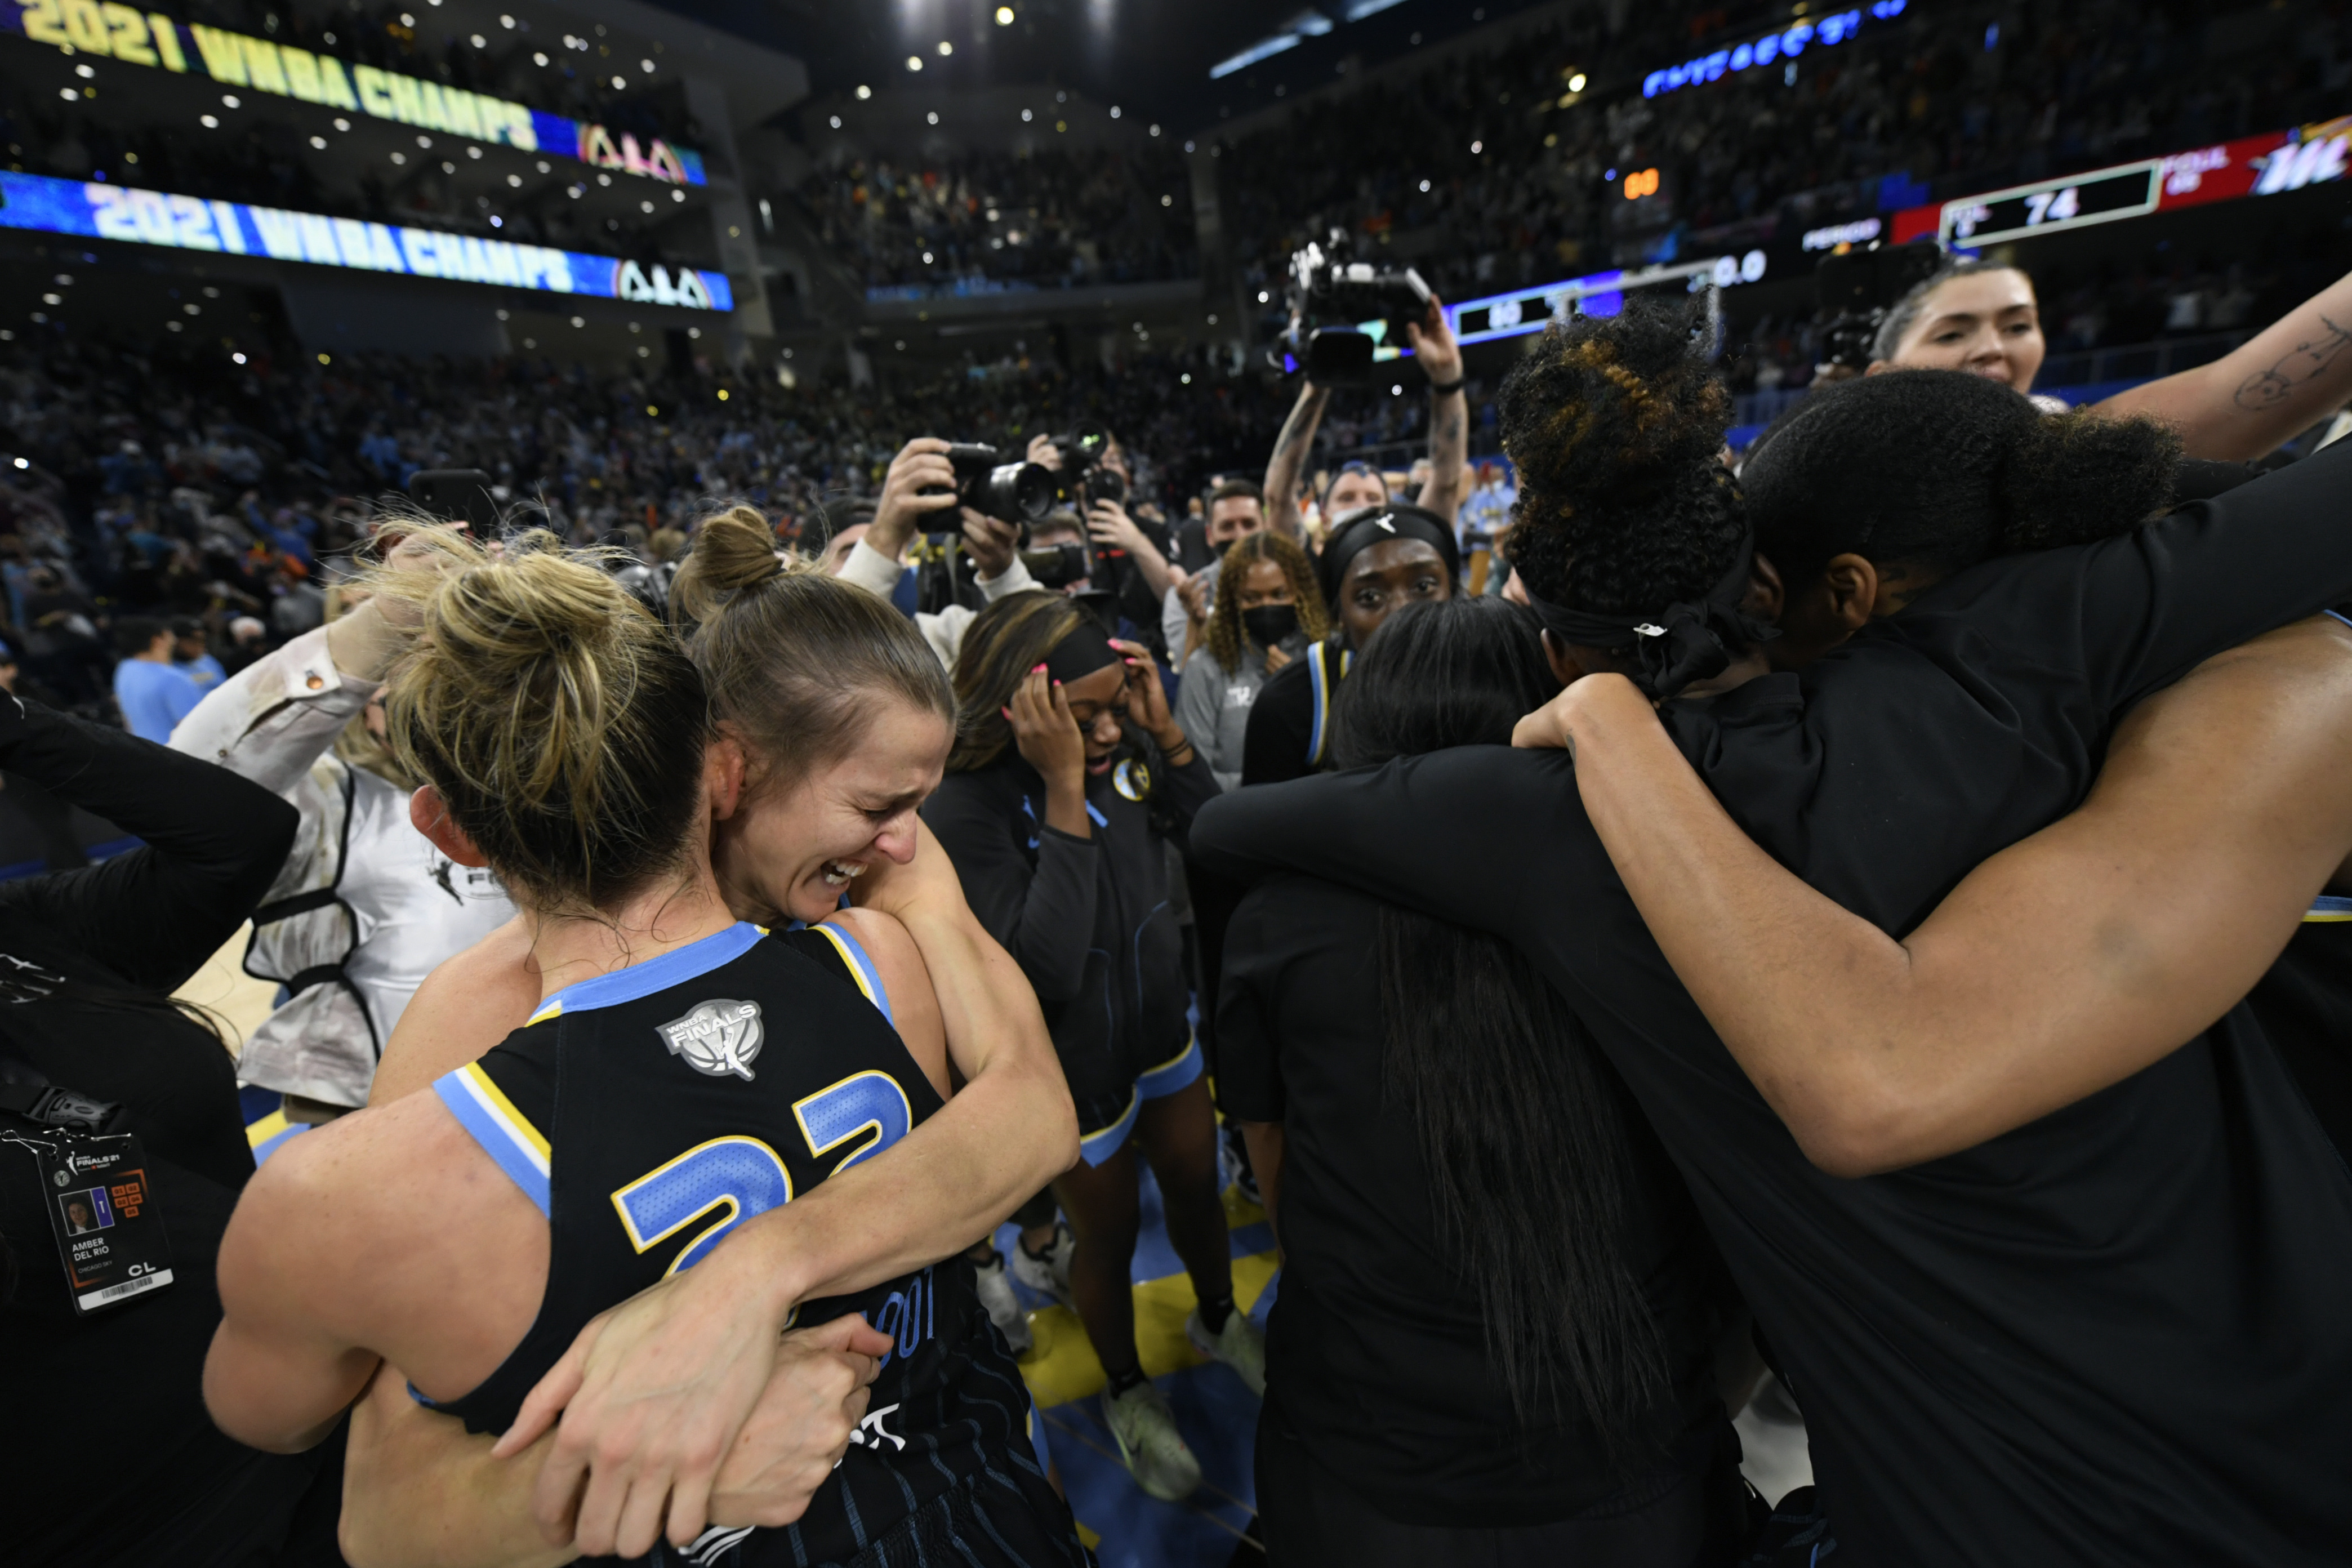 Sky guards Courtney Vandersloot and Allie Quigley celebrate after winning the WNBA title Sunday at Wintrust Arena.